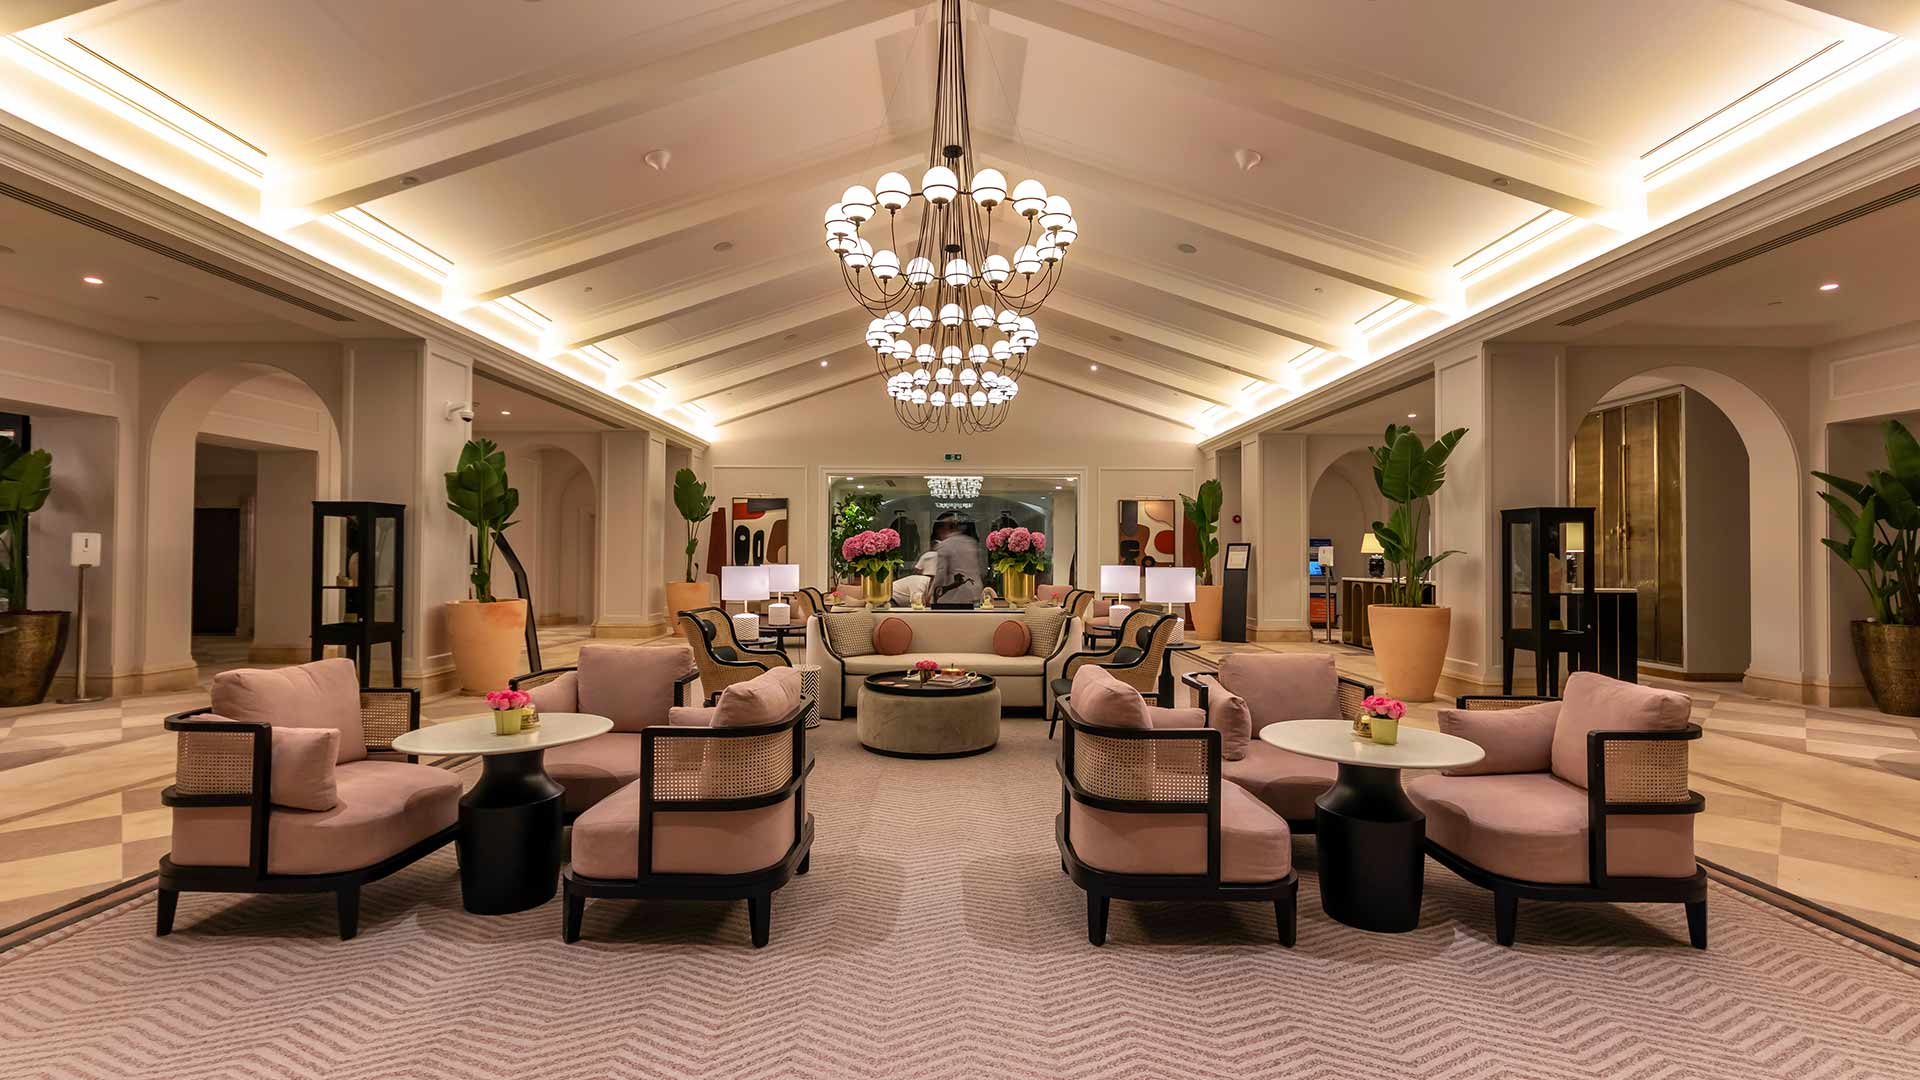 Lighting Hotel Lobby Stylish Relaxing Interior Cove Illumination Cottage Style Ceiling Architecture Feature Pendant Lights Consultants Nulty